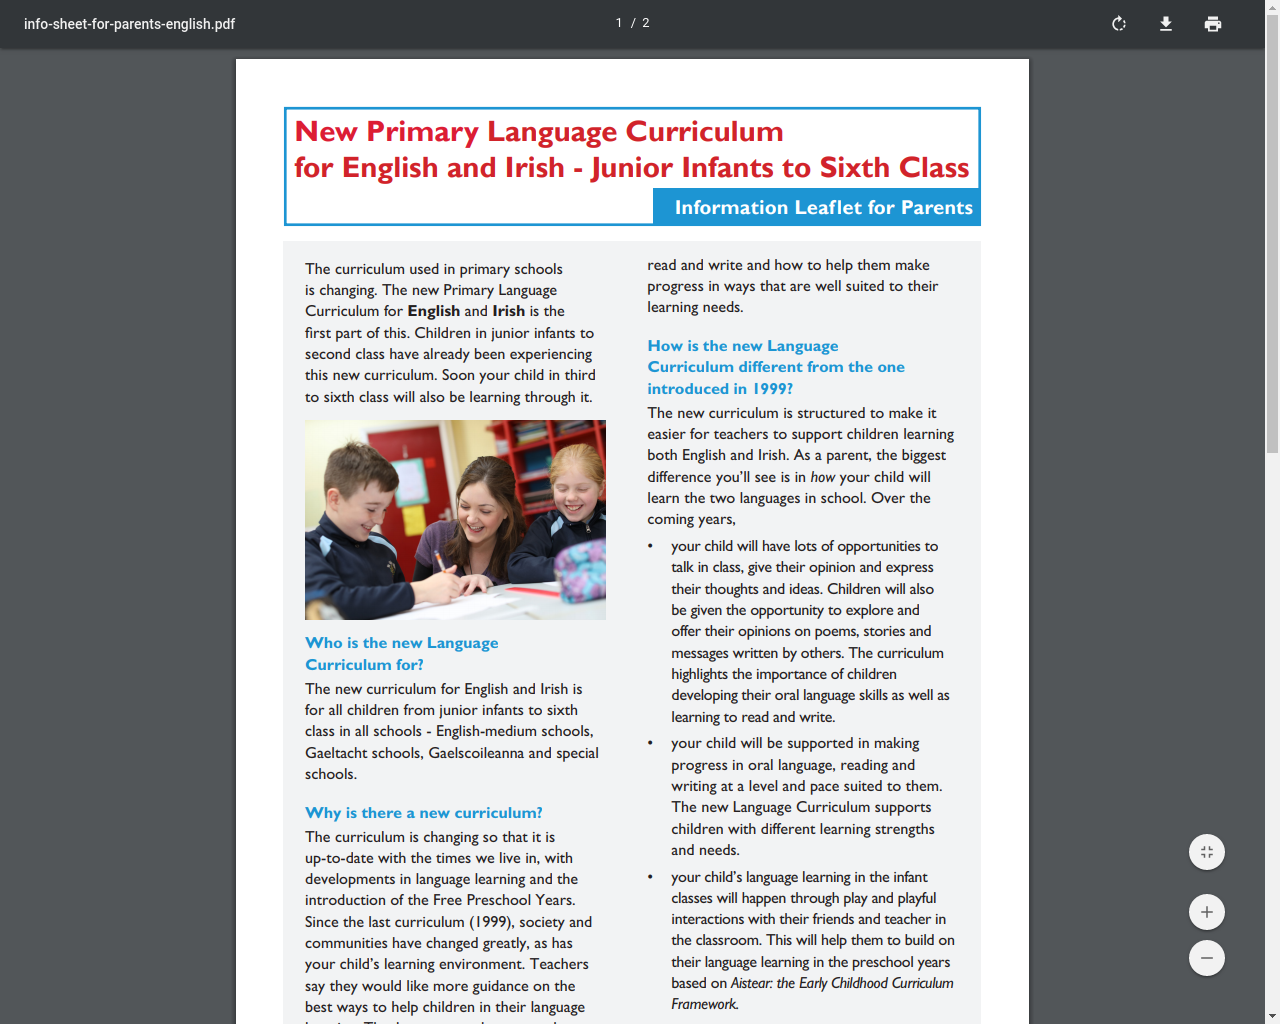 New Language Language Curriculum for English and Irish-Junior Infants to Sixth Class